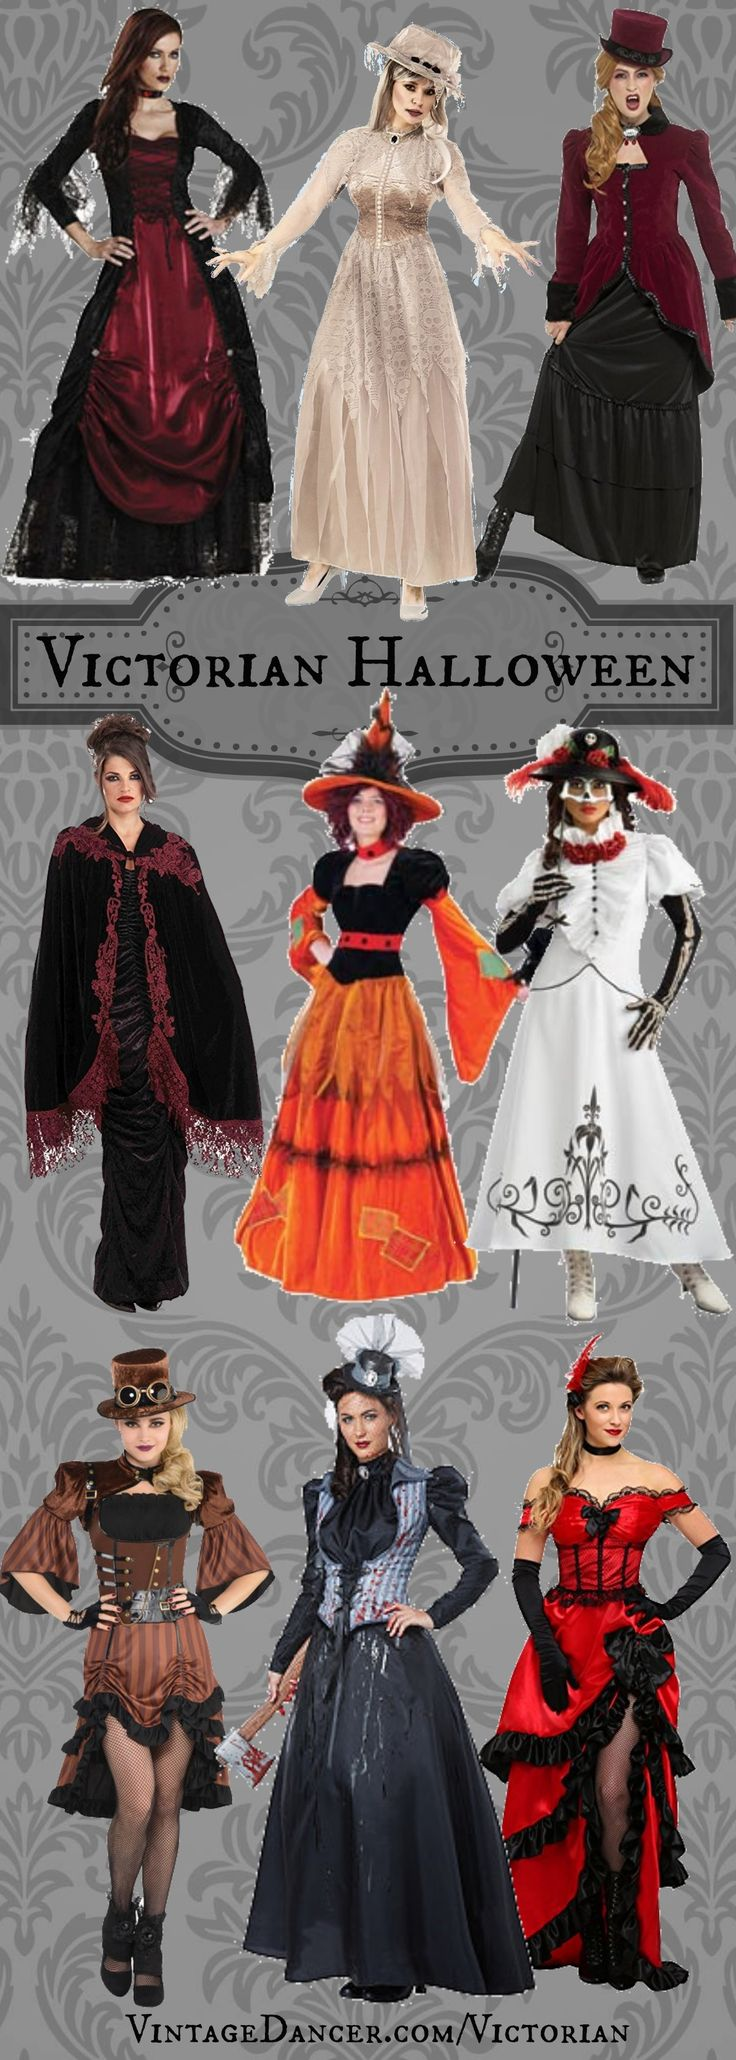 Victorian Halloween Costume Ideas: vampire, ghost, Halloween witch, Dia de los Muertos, Ringmaster, Steampurk, Axe Murdered, Saloon girl and more